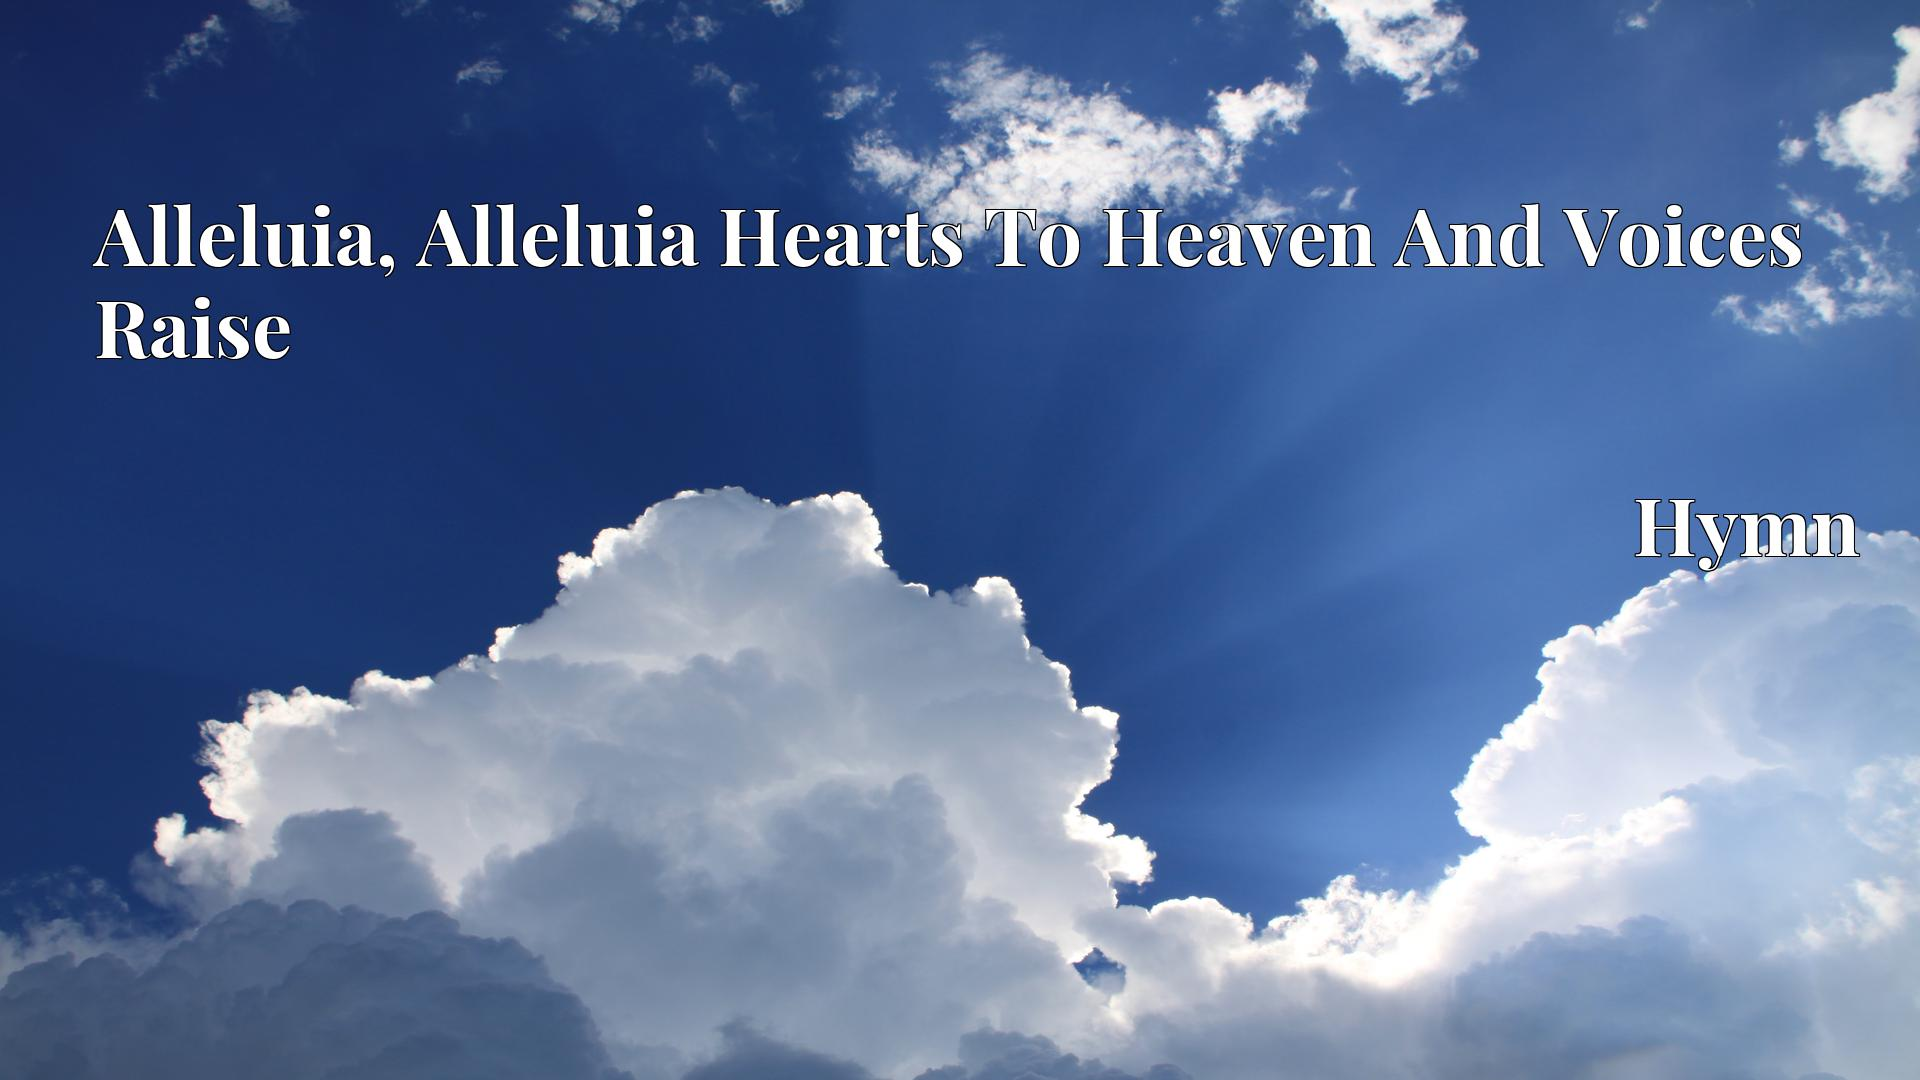 Alleluia, Alleluia Hearts To Heaven And Voices Raise - Hymn